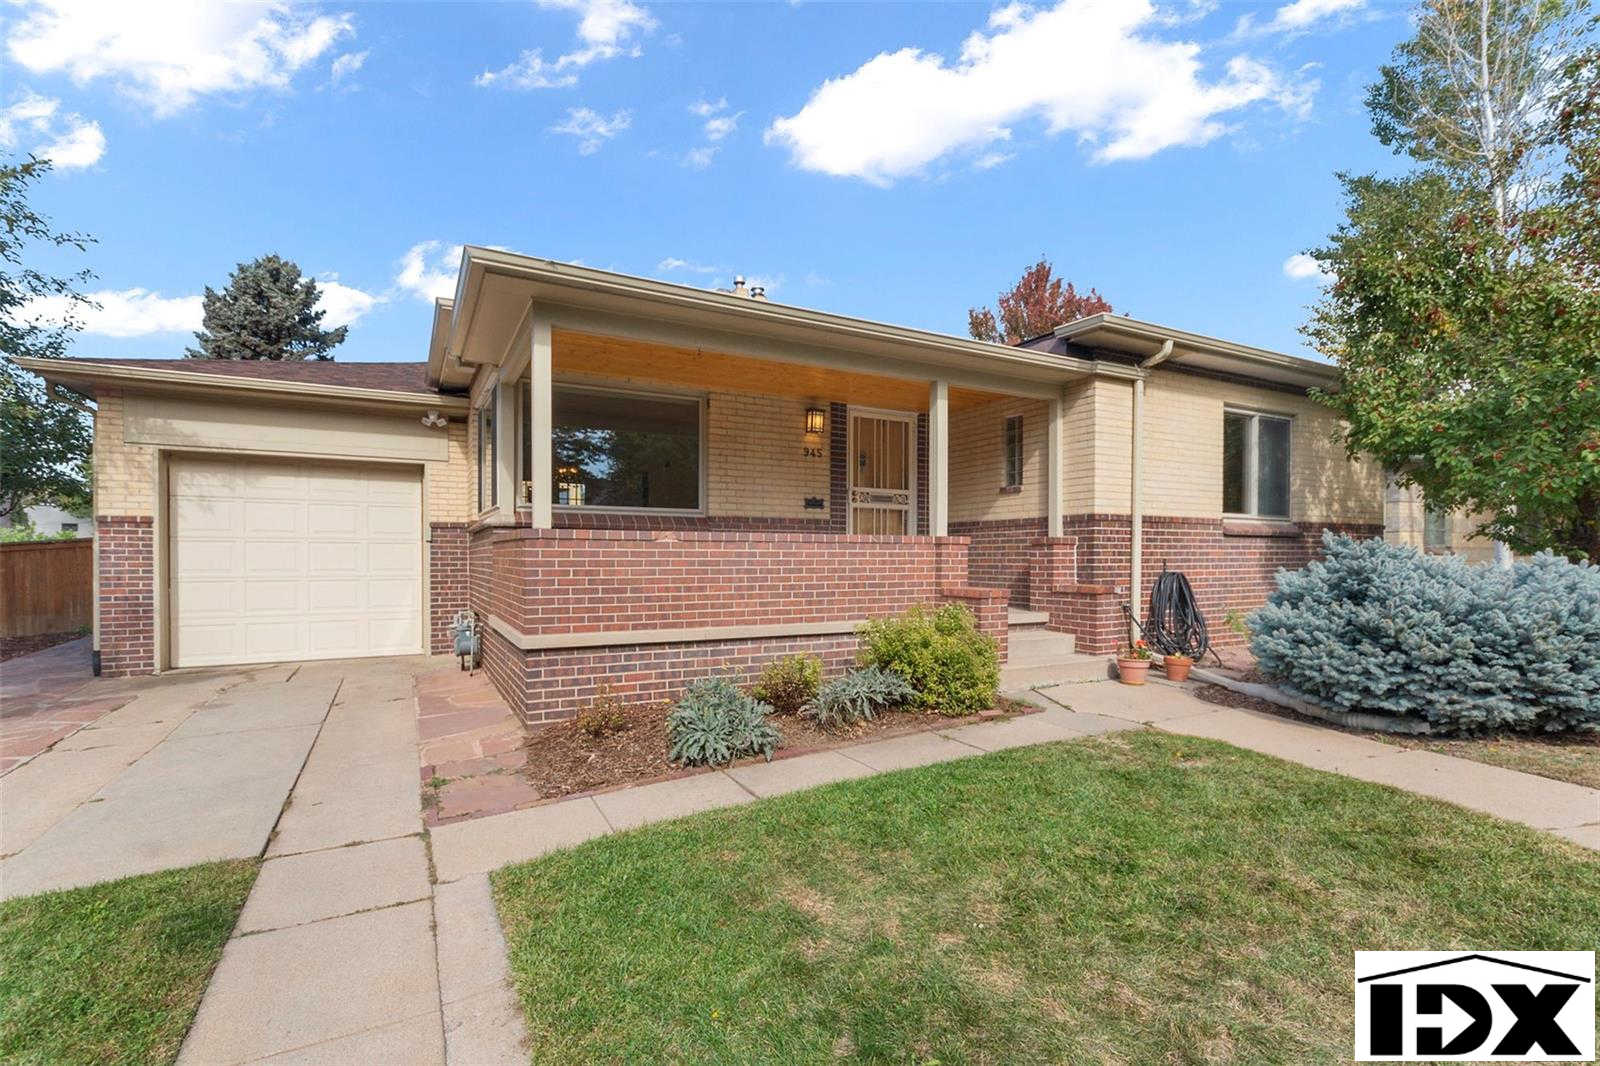 945 South Milwaukee Way, Denver, CO 80209 now has a new price of $2,800!